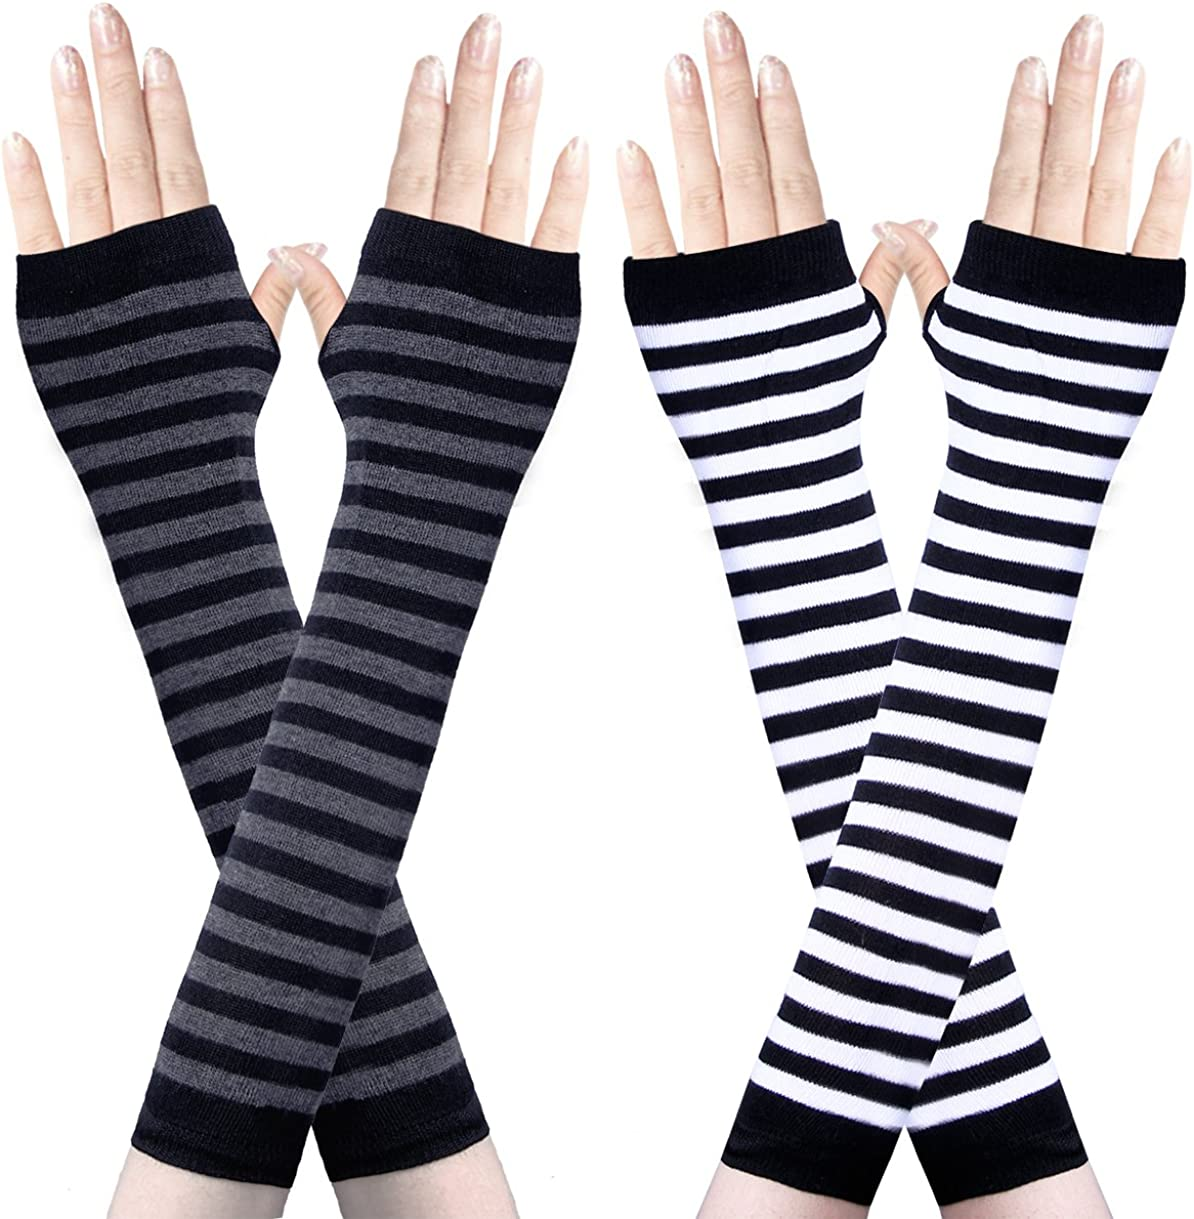 Amandir 2-4 Pairs Long Fingerless Gloves for Women Arm Warmers Knit Thumbhole Stretchy Gloves(Style 2) at  Women's Clothing store